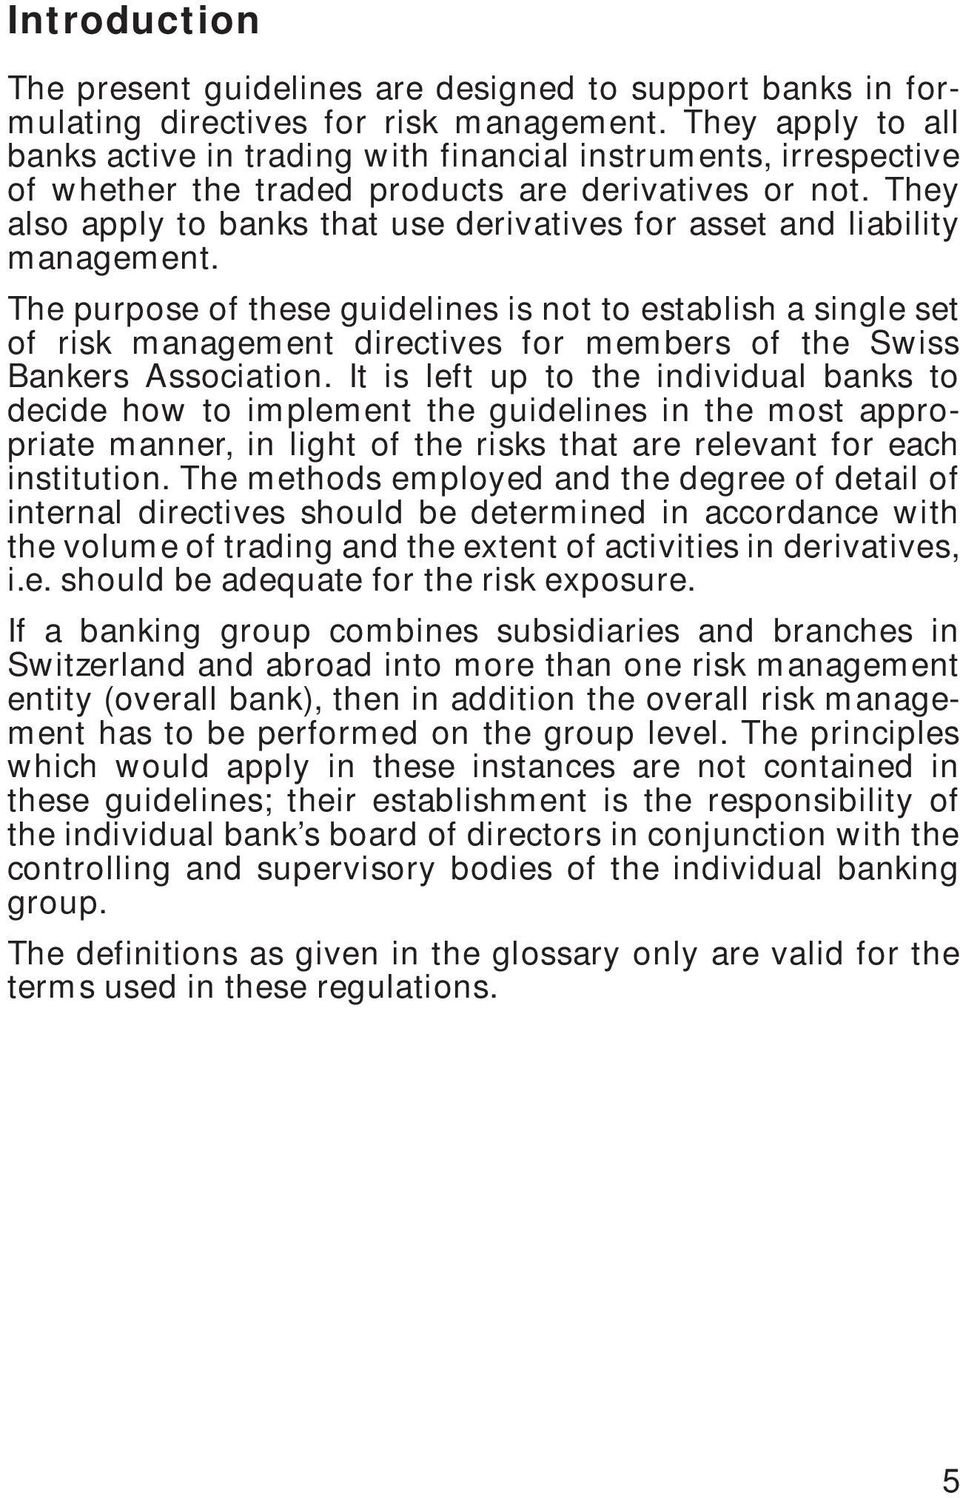 They also apply to banks that use derivatives for asset and liability management.